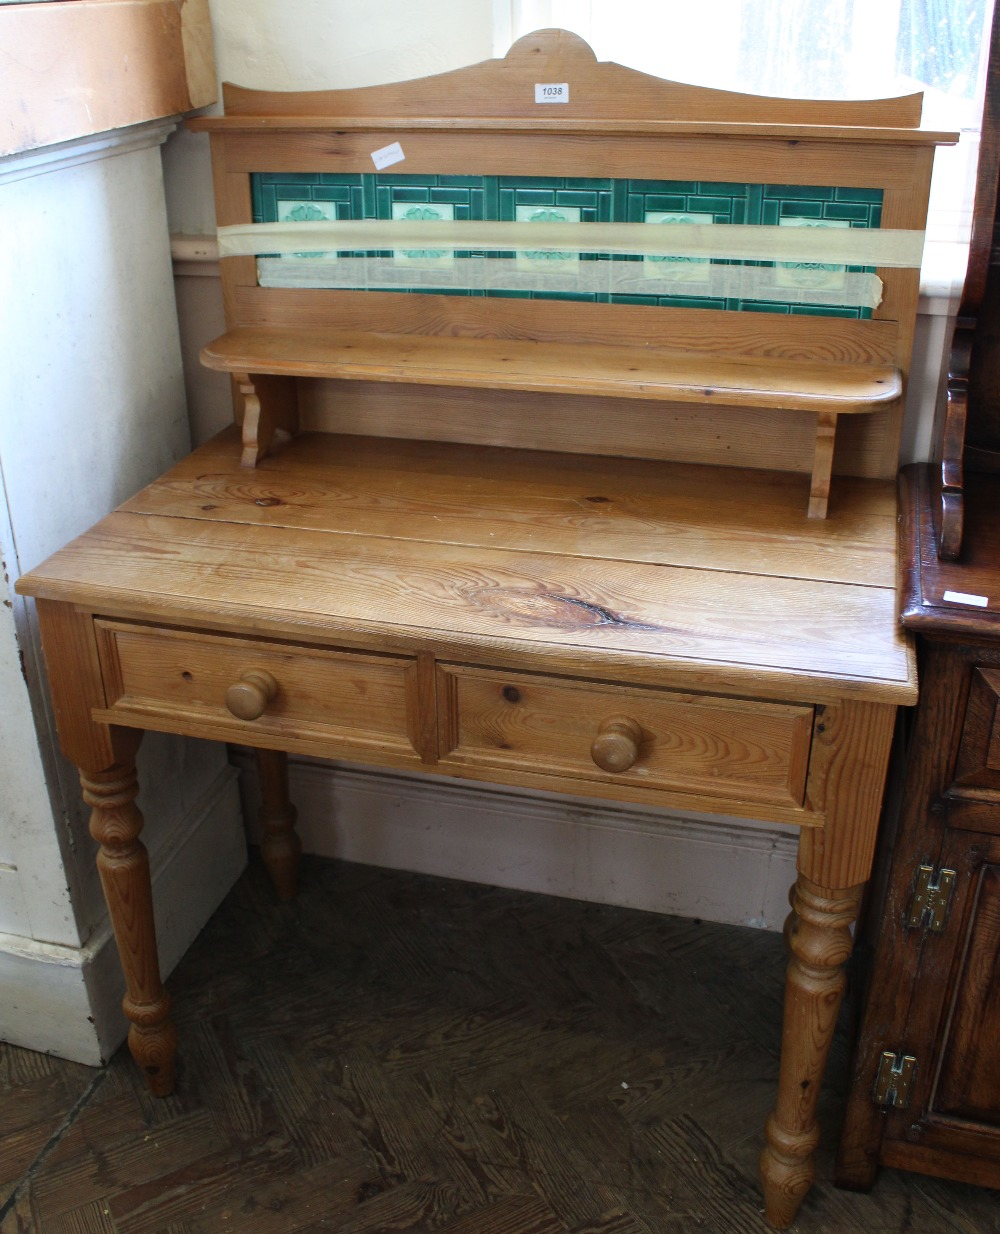 Lot 1038 - A reproduction pine two drawer washstand with green tiled upstand